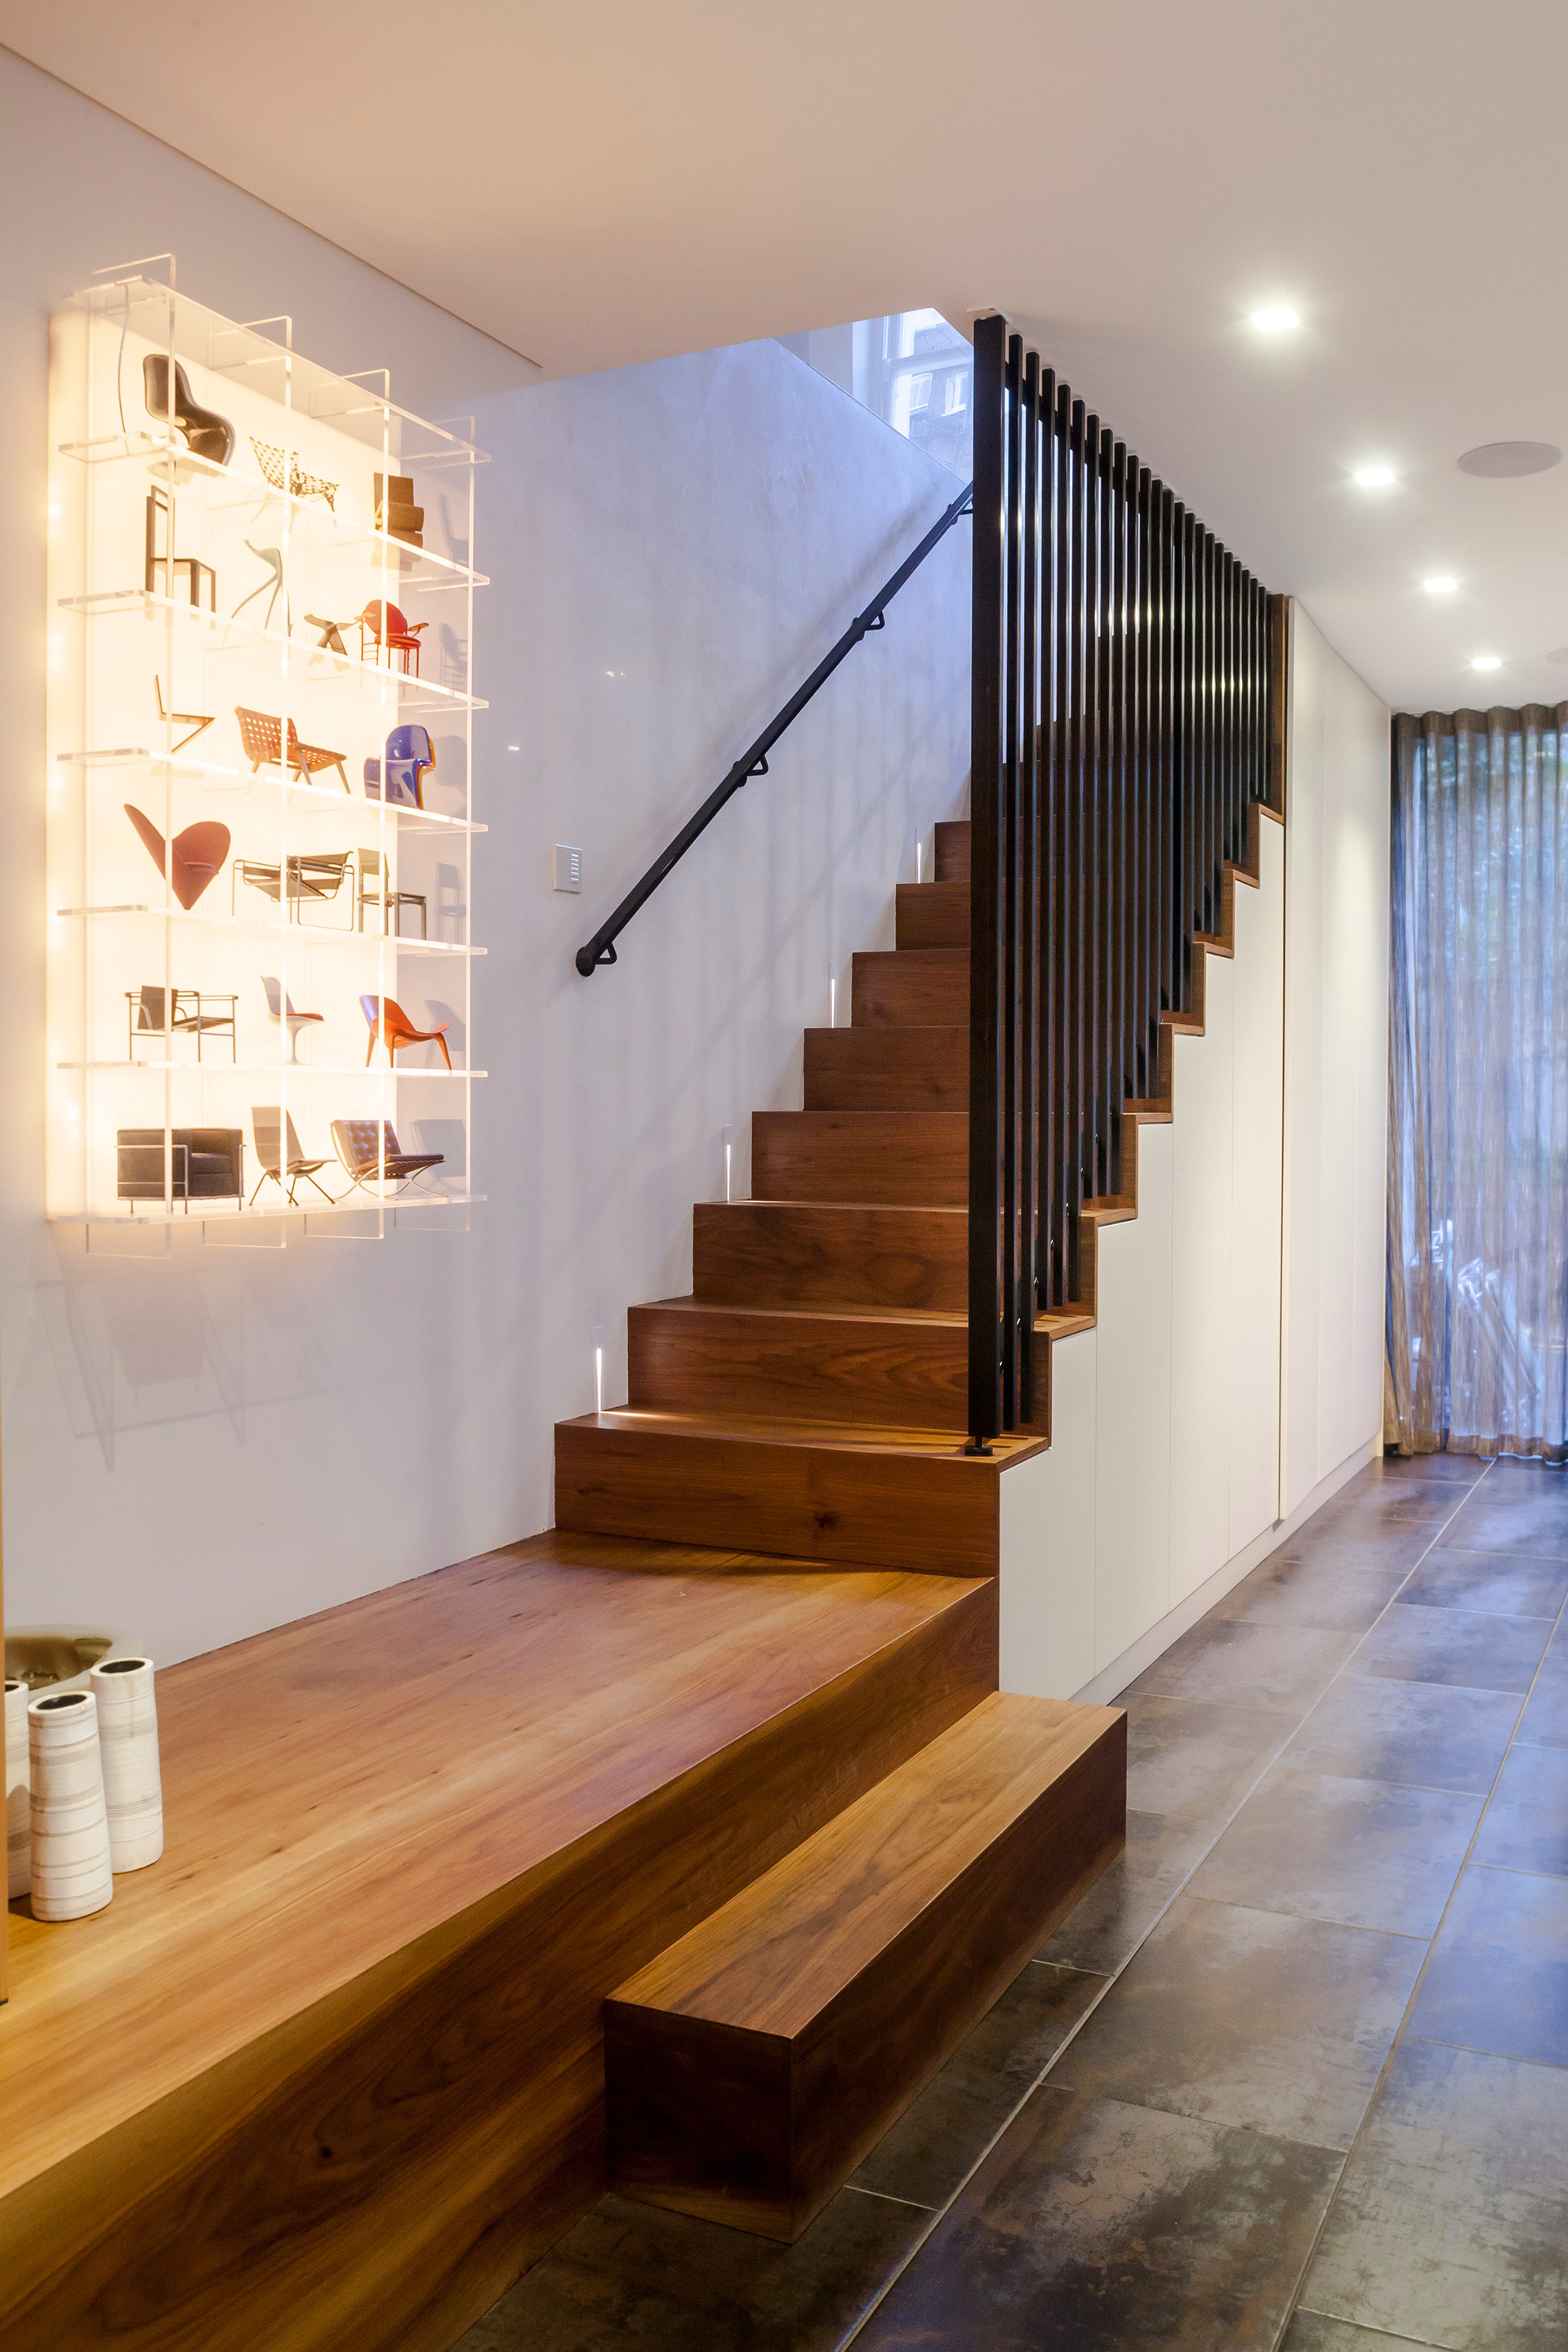 Studio 29 residential architects interior design notting hill 04